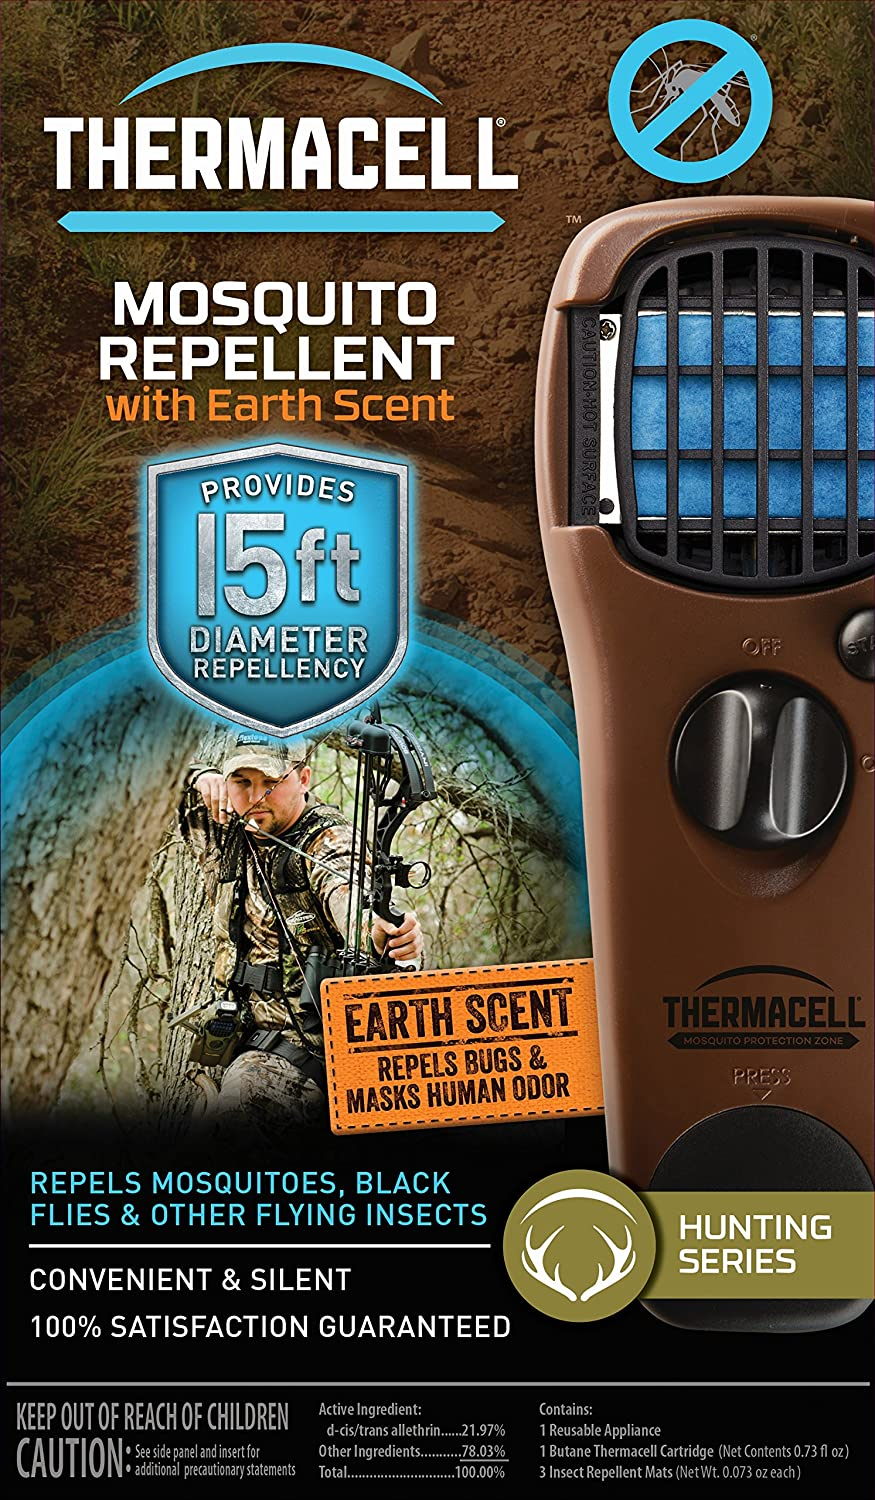 Amazon.com : Thermacell Mosquito Repellent Outdoor and Camping Repeller  Device : Sports & Outdoors